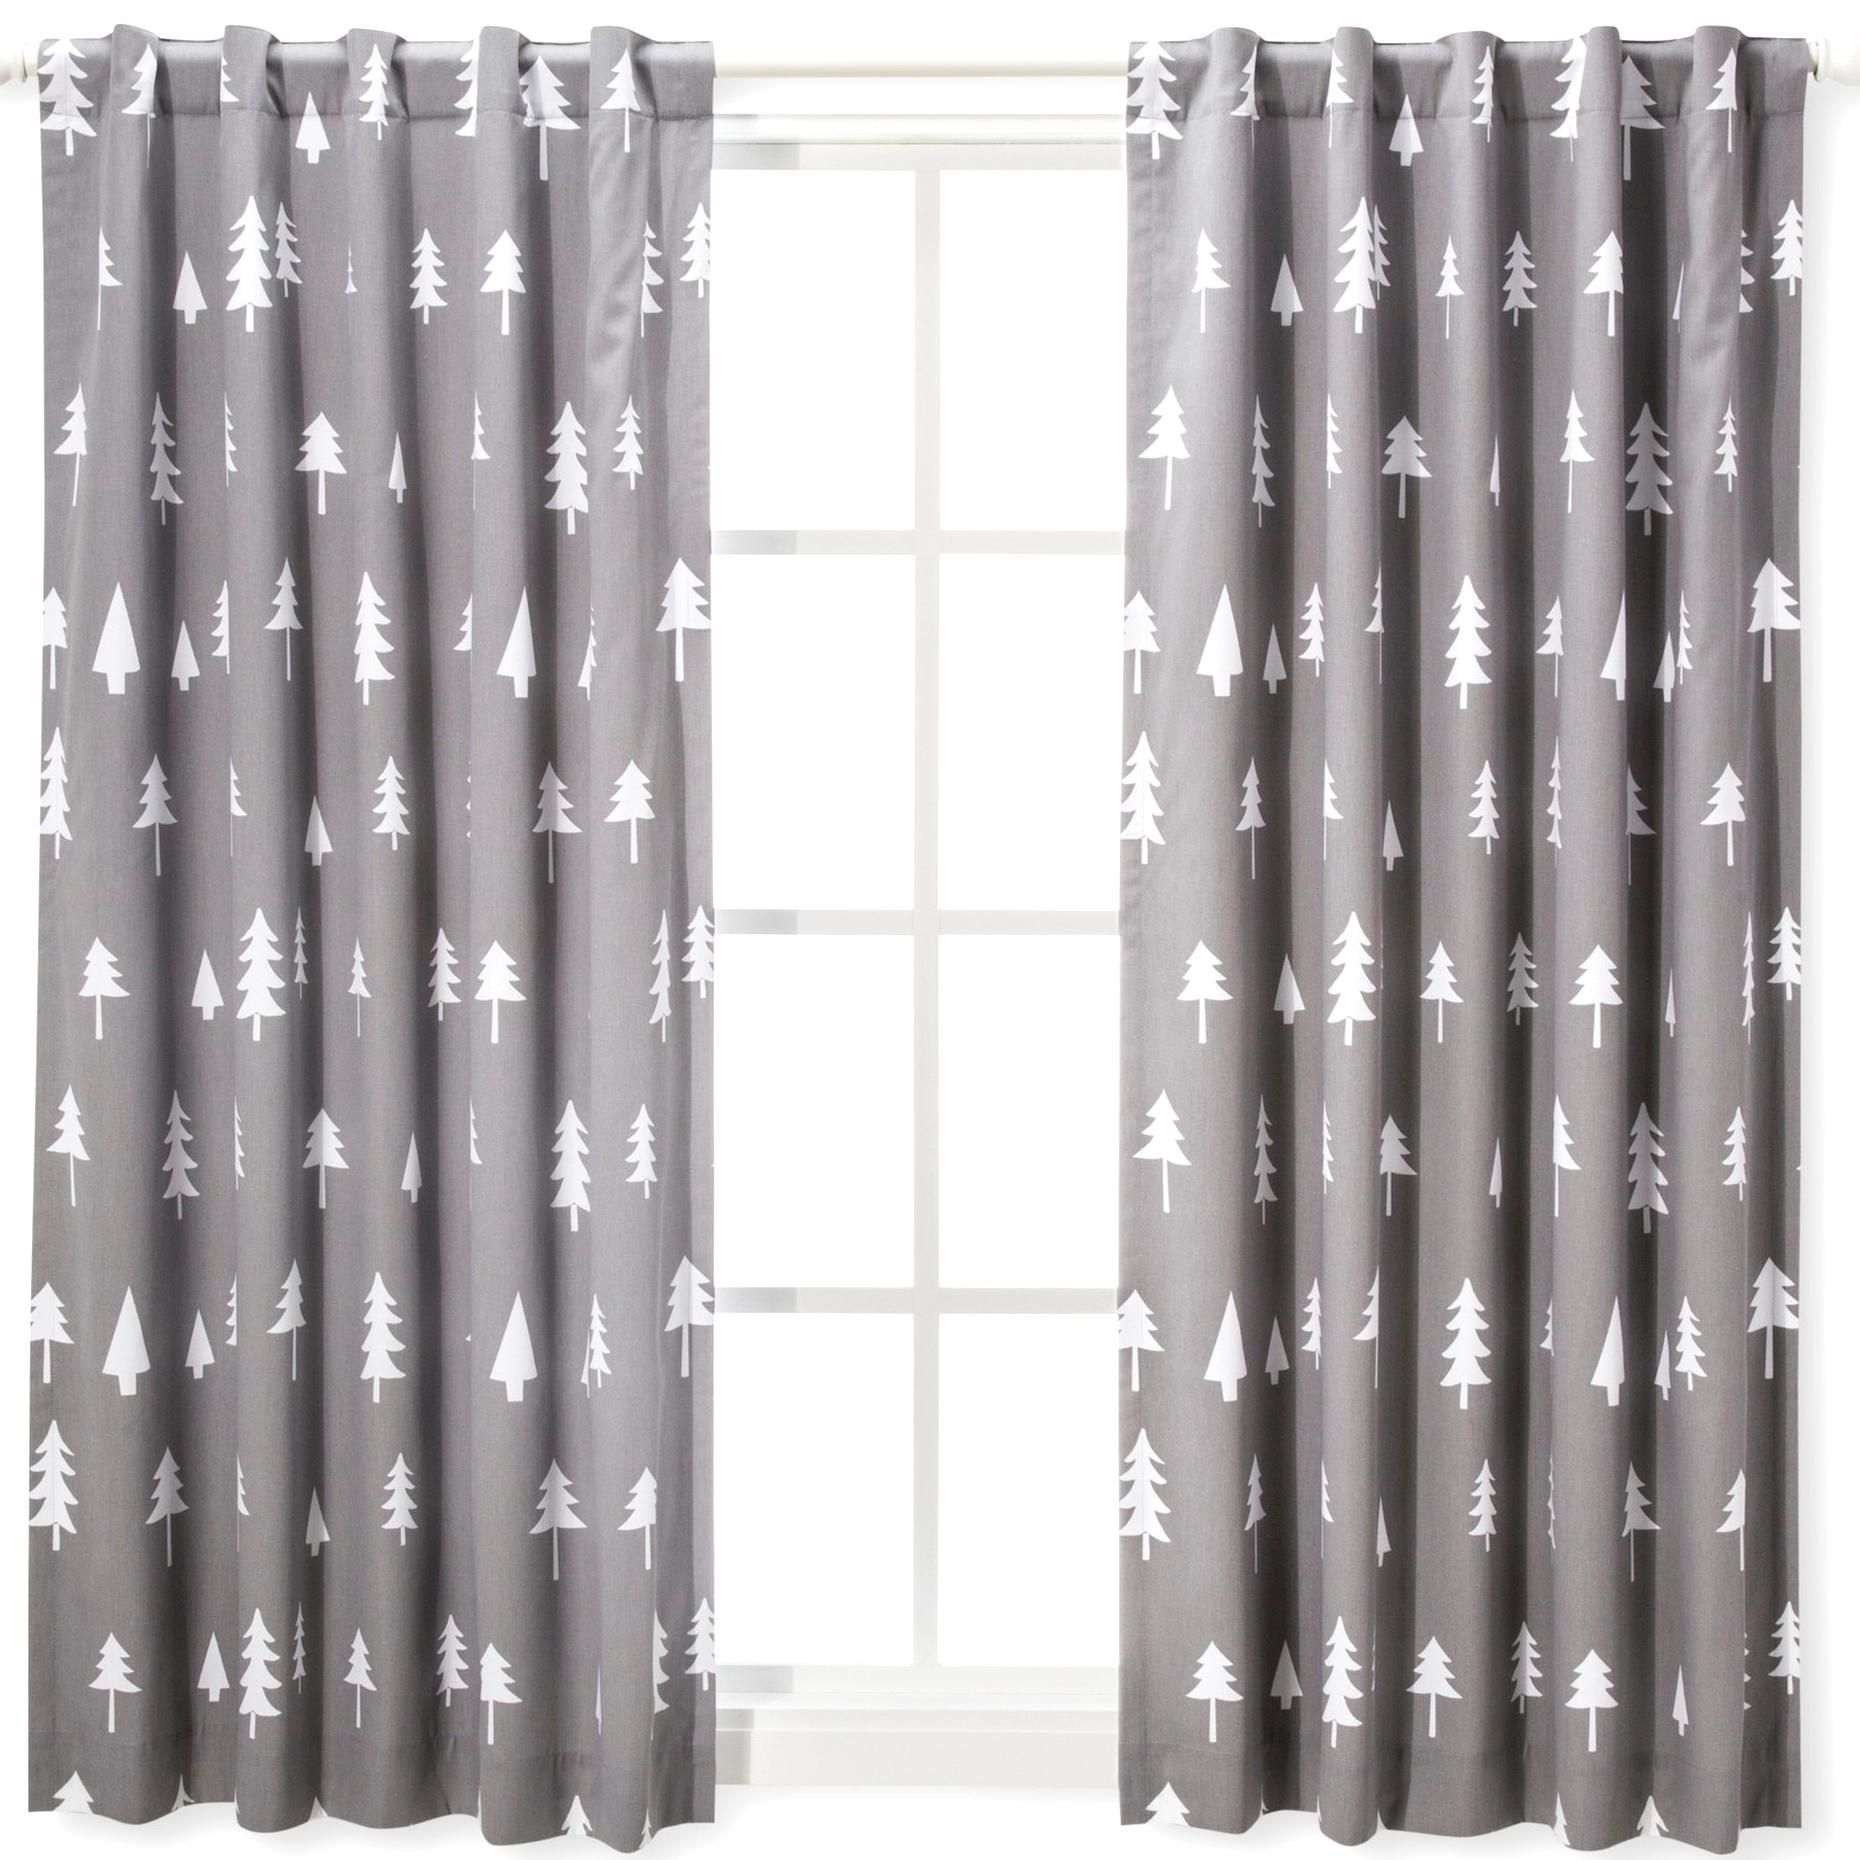 Blackout Curtain Panel Trees 42x 63 Cloud Island Gray Size 42x63 In 2020 Panel Curtains Blackout Curtains Everyday Essentials Products